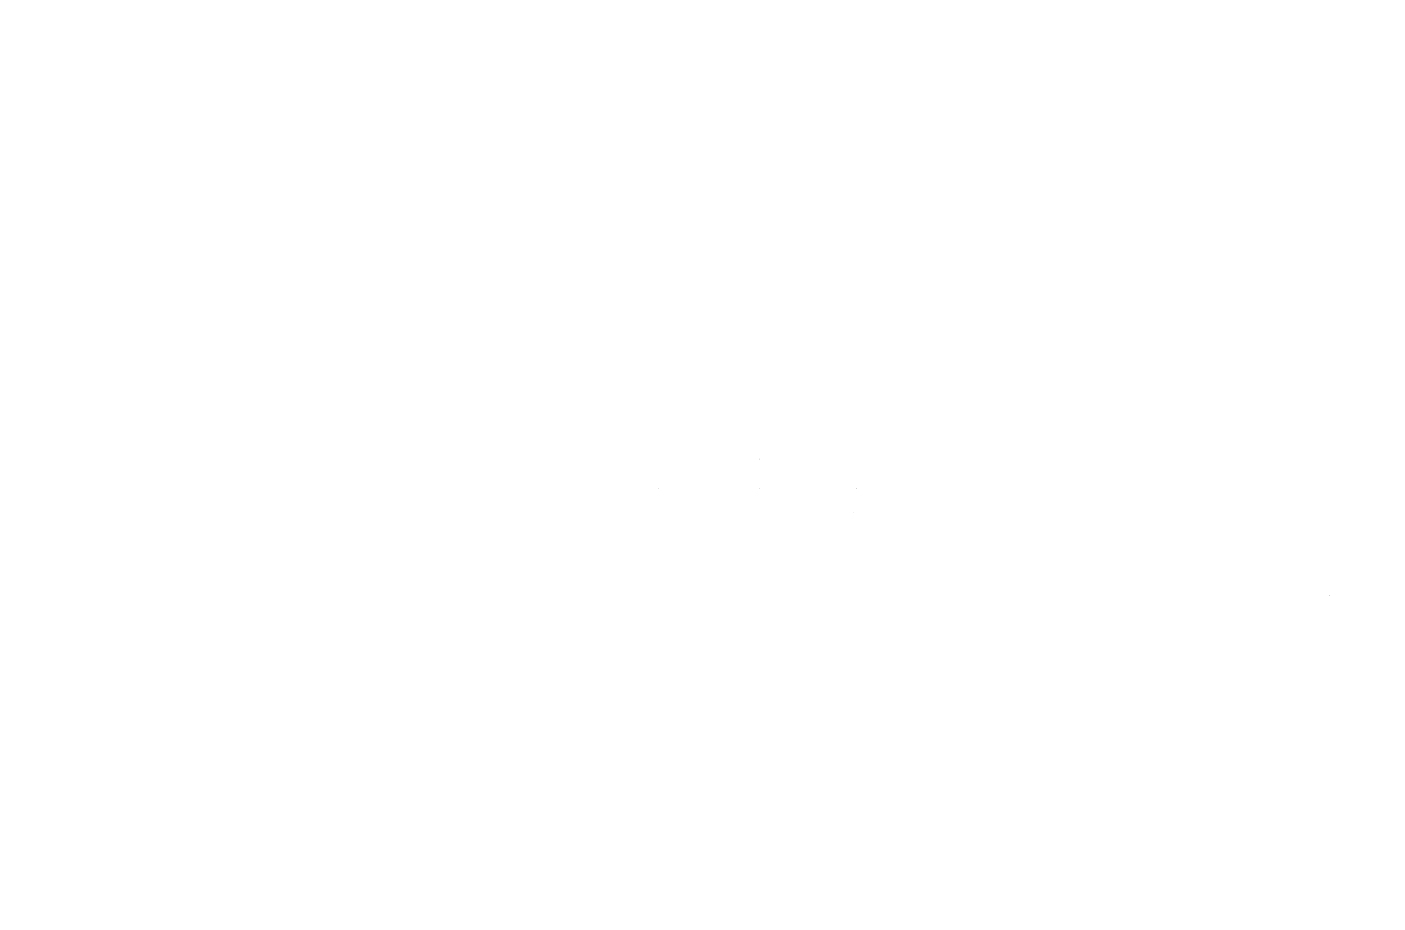 adventure church